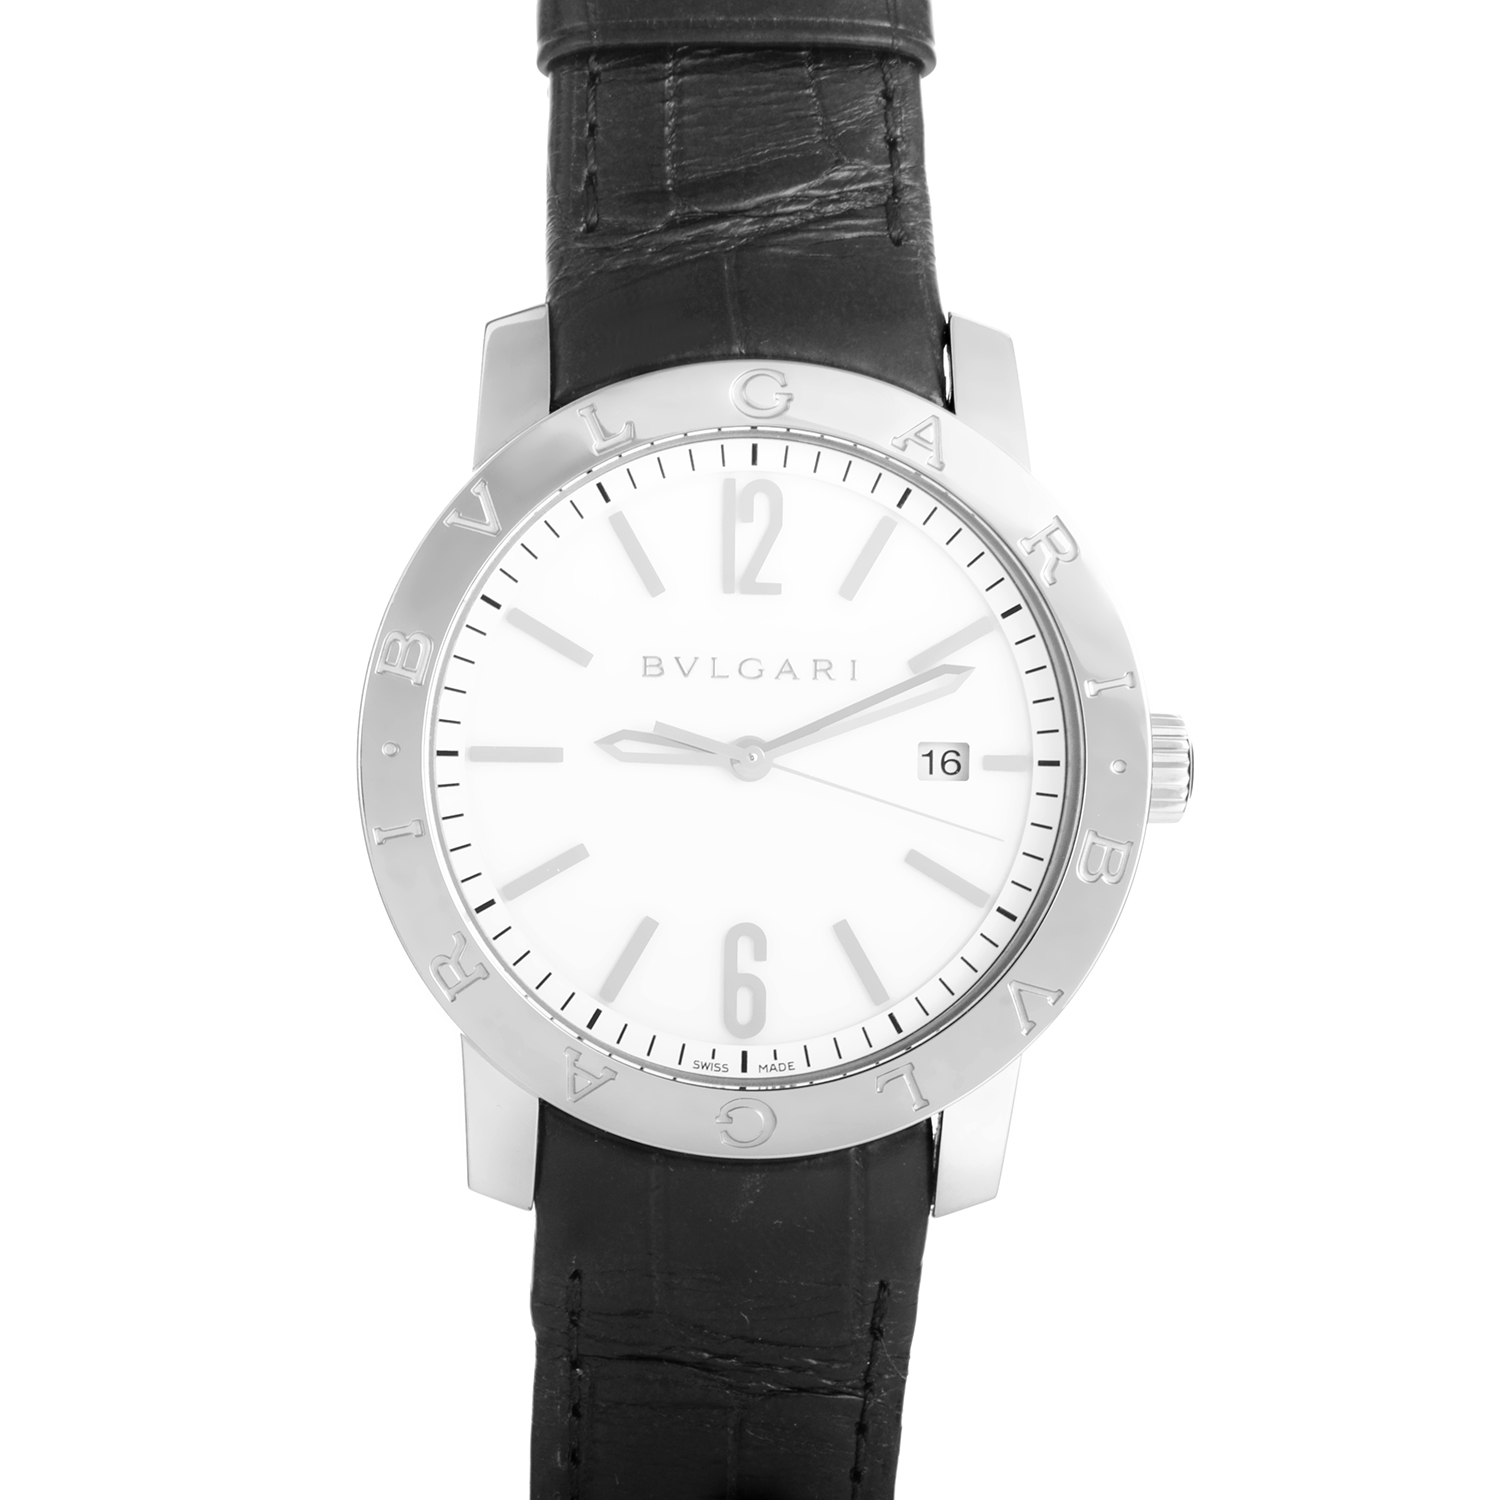 BVLGARI BVLGARI Stainless Steel Wristwatch BB41WSLD